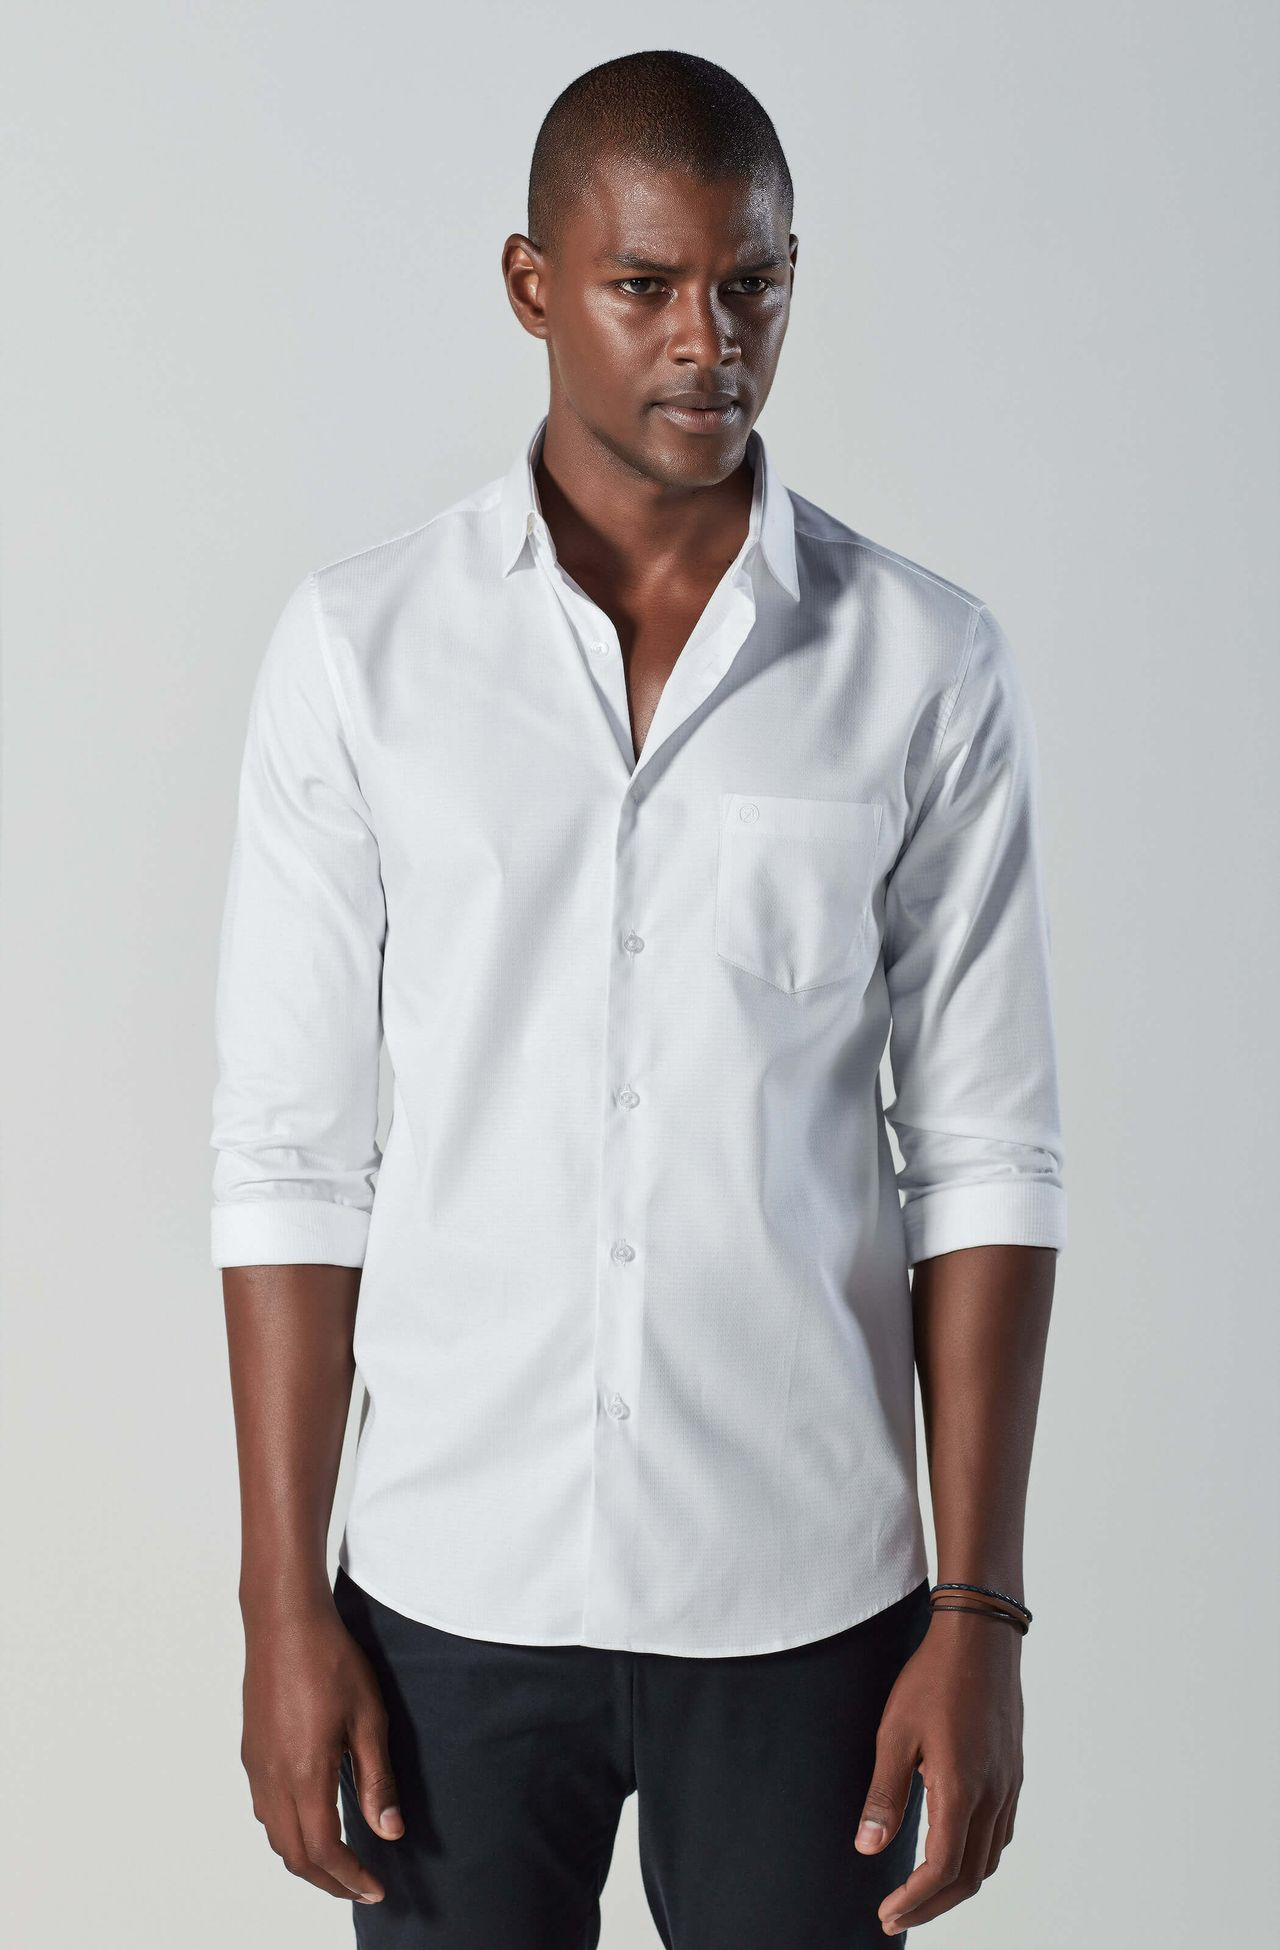 2501XWZ41771_900_1-CAMISA-WORK-ML-MAQUINETADA